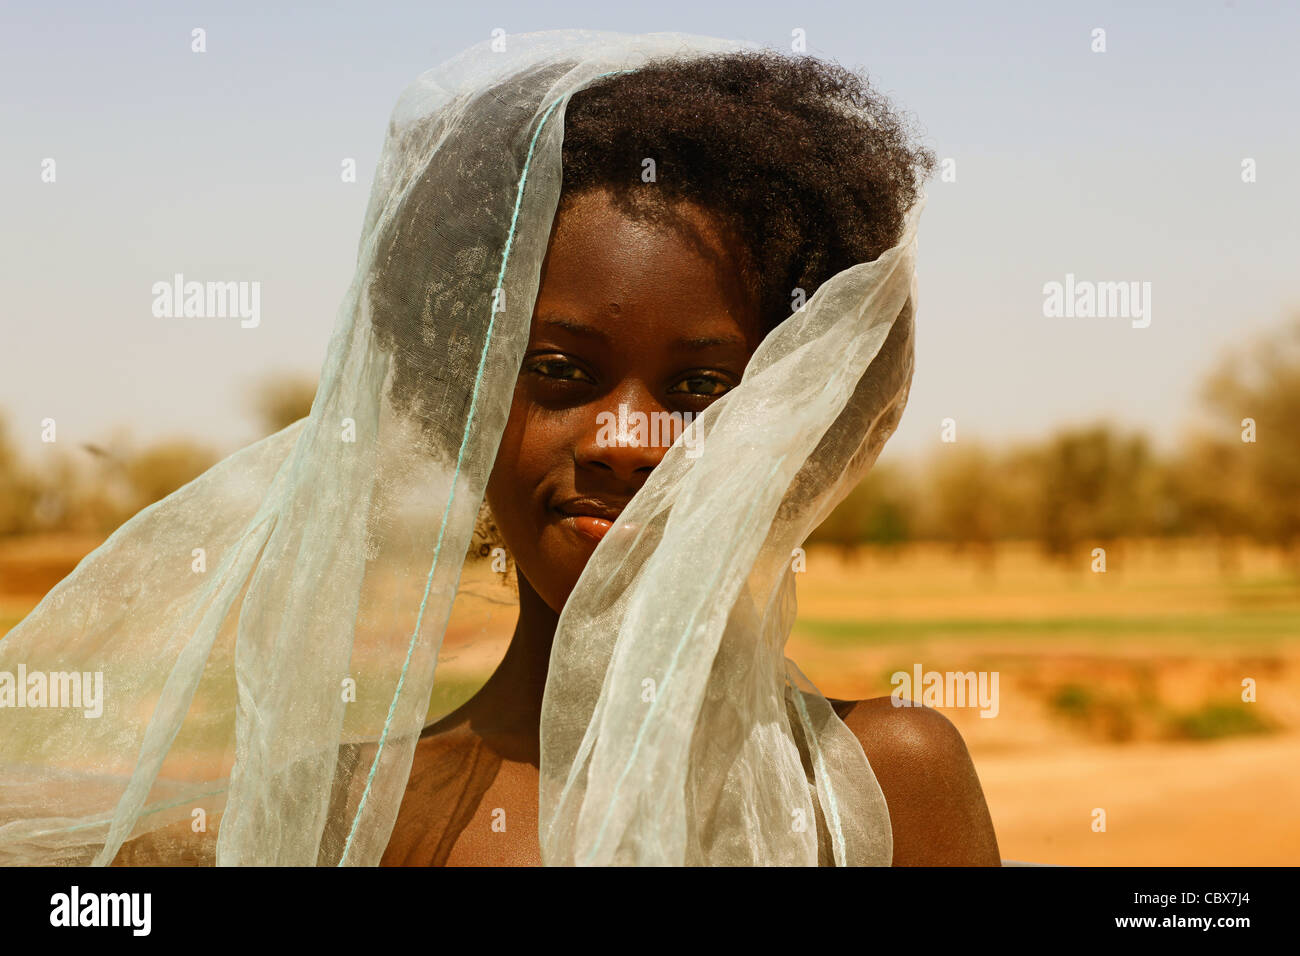 Girl in Mali, Africa - Stock Image